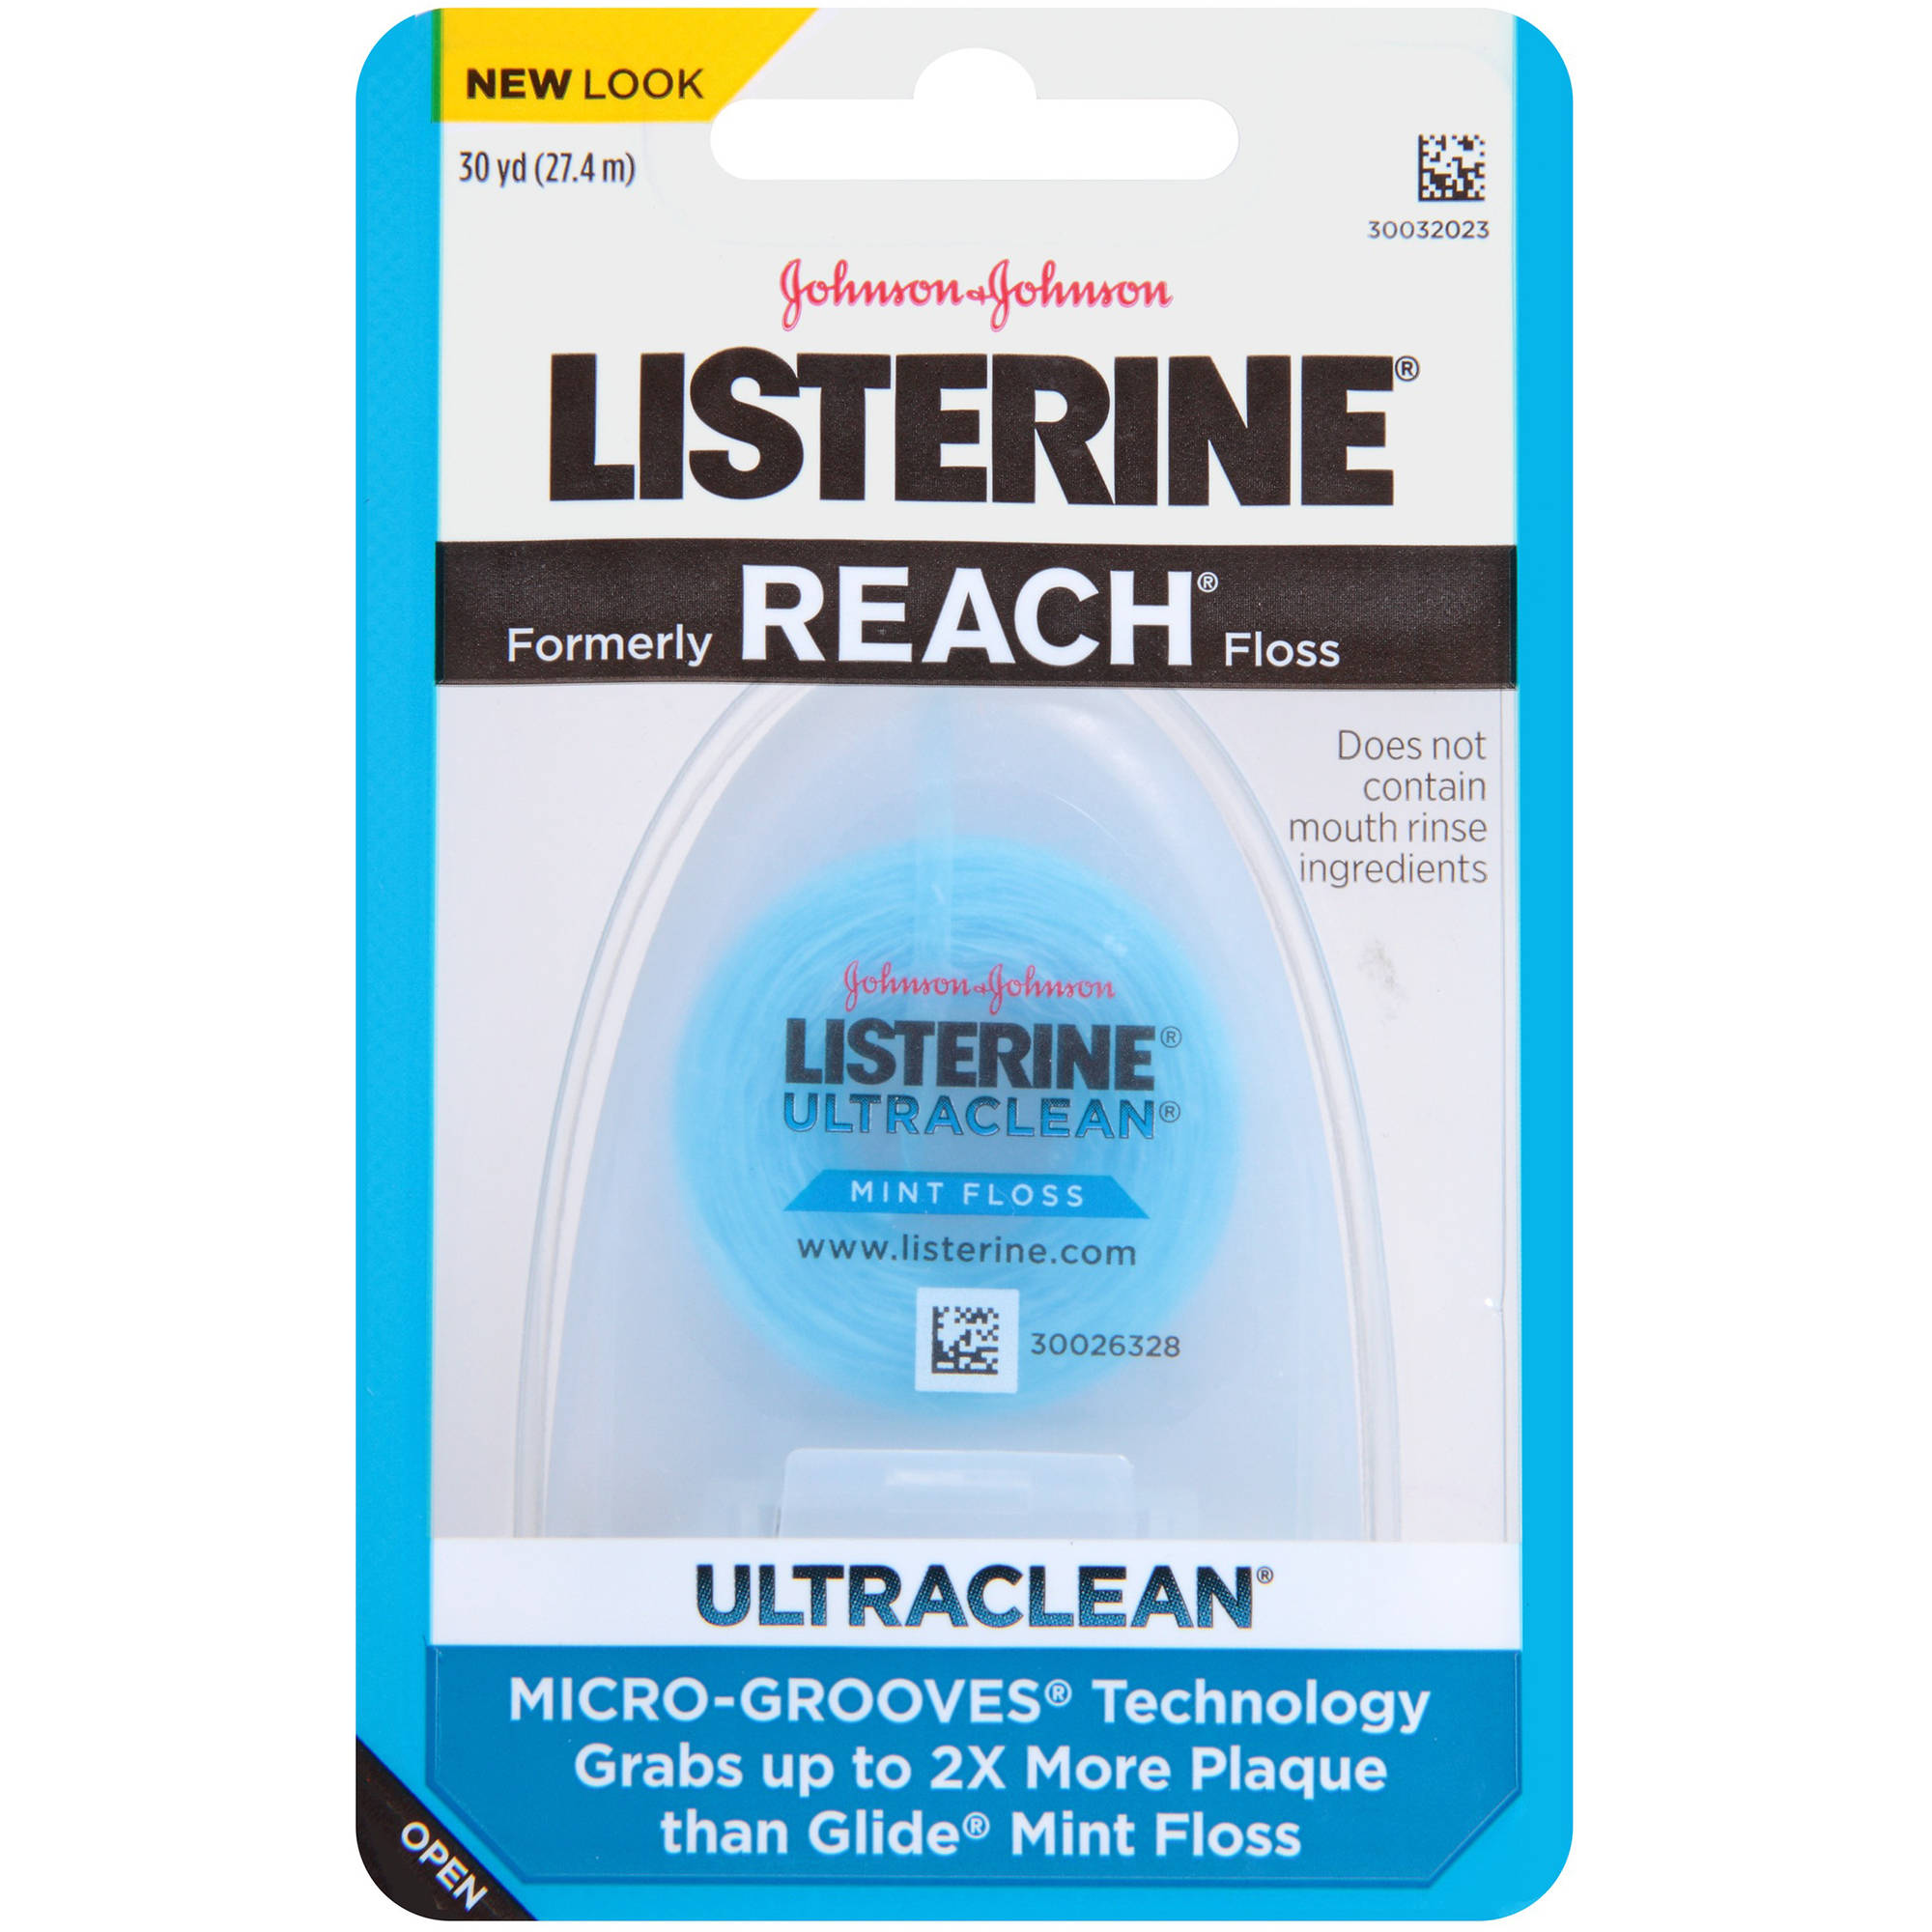 Listerine UltraClean Floss, Mint, 30 Yards